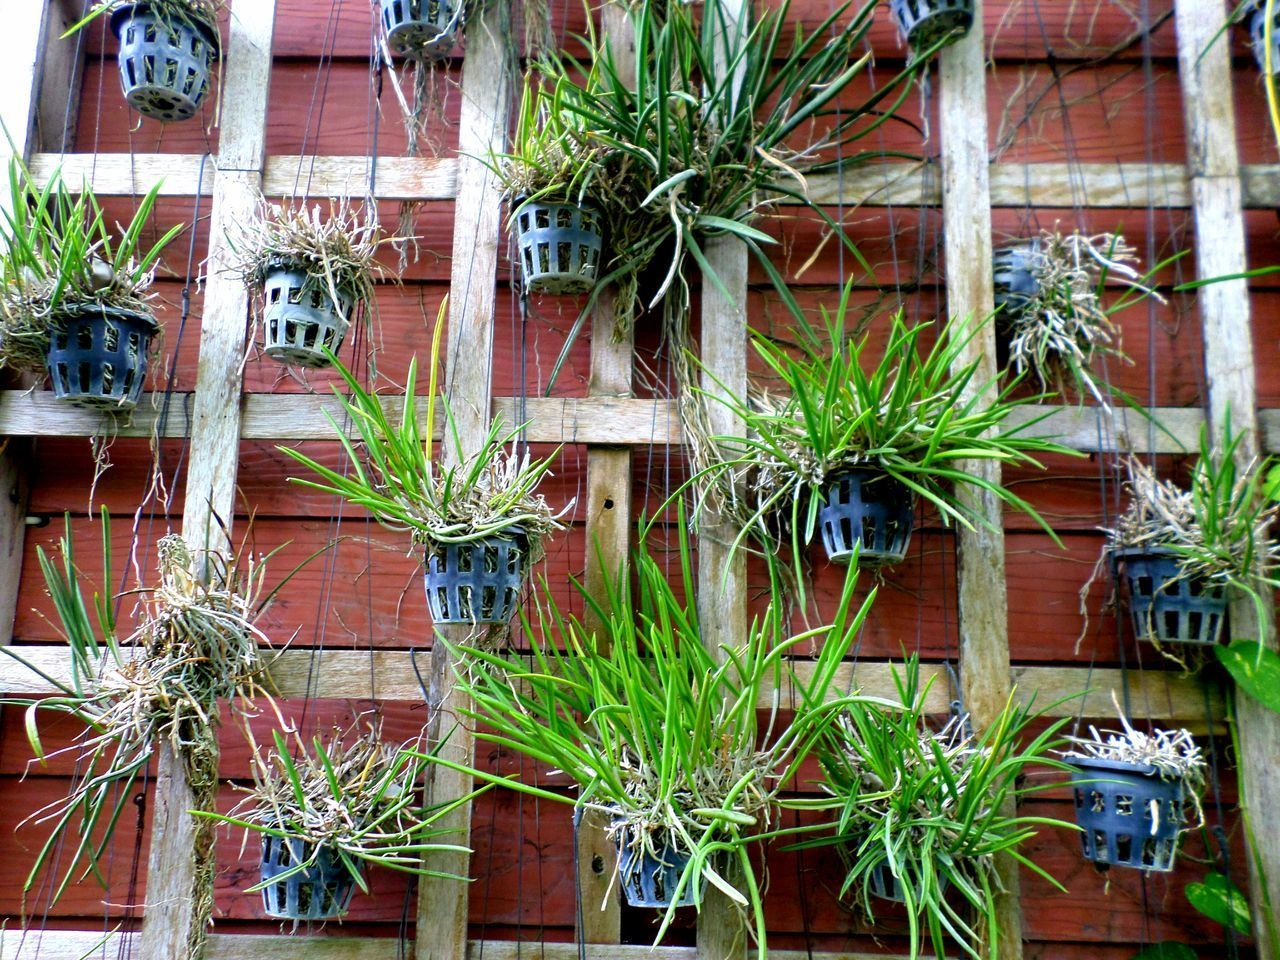 POTTED PLANTS ON BUILDING